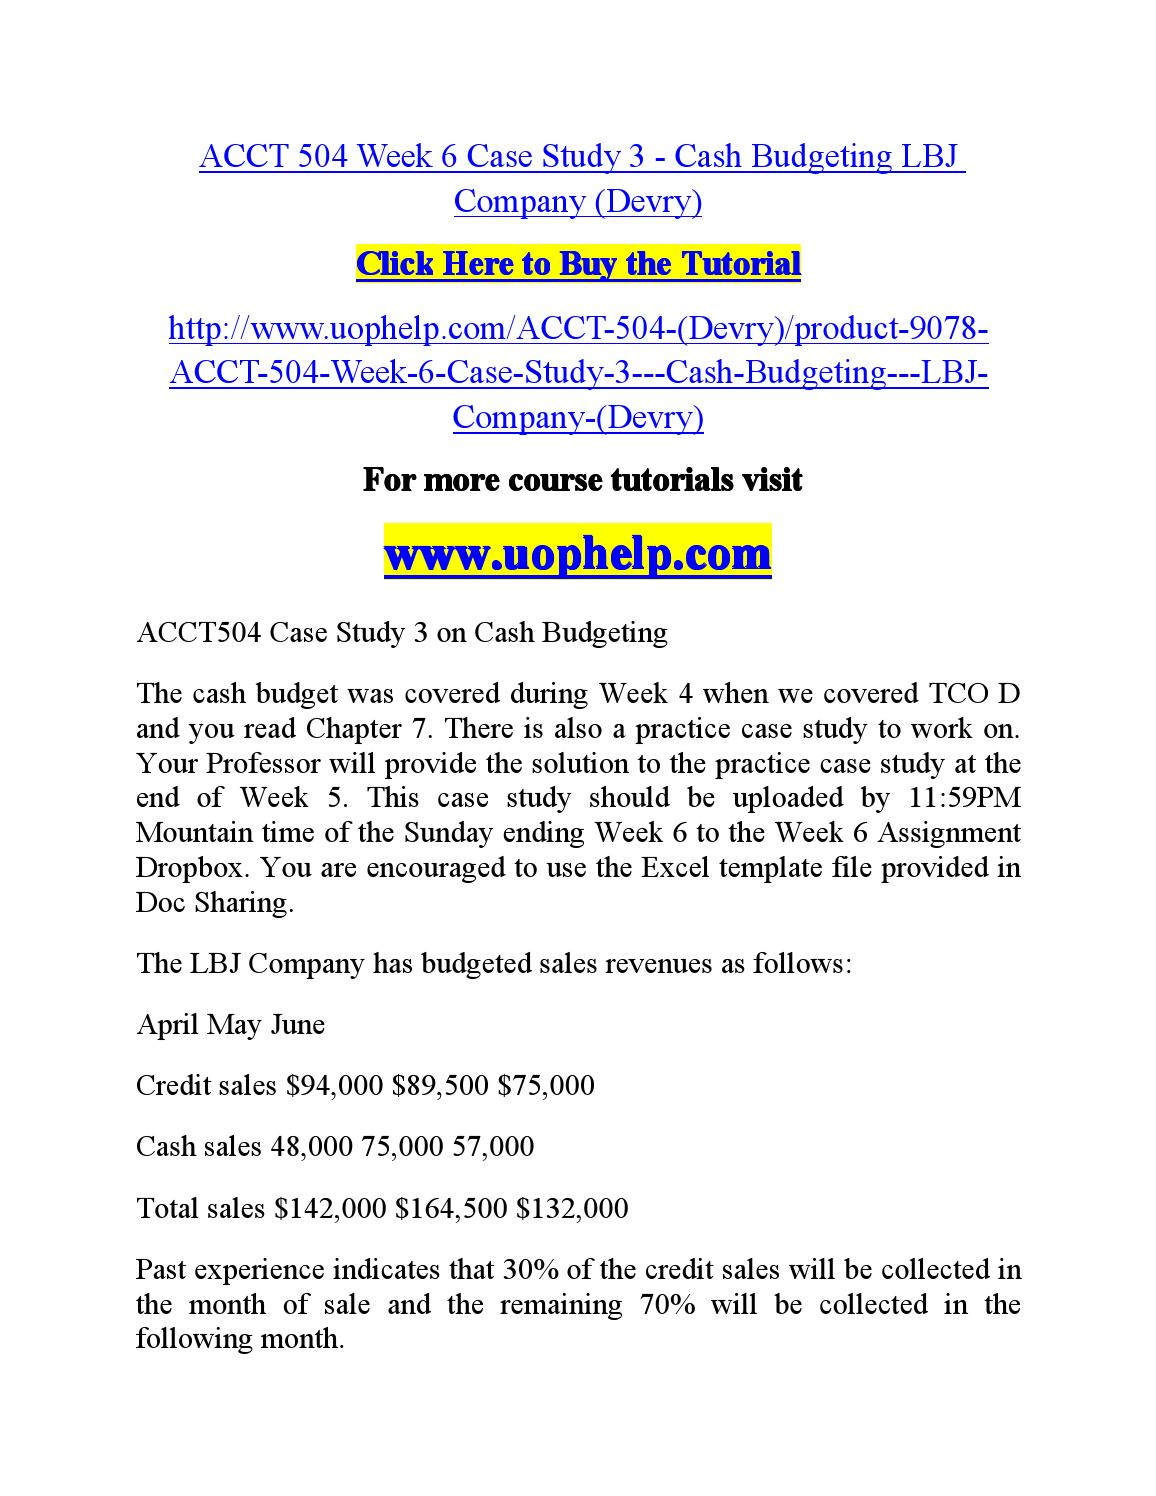 acct504 practice case study 3 cash Third-party sender case studies: odfi best practices to close the gap an ach risk management white paper this ach risk management white paper examines three case studies related to third-party sender risk these case studies address odfi challenges related to: 1) on-boarding a new third-party sender, 2) monitoring the third-party sender relationship on an ongoing basis, and 3.